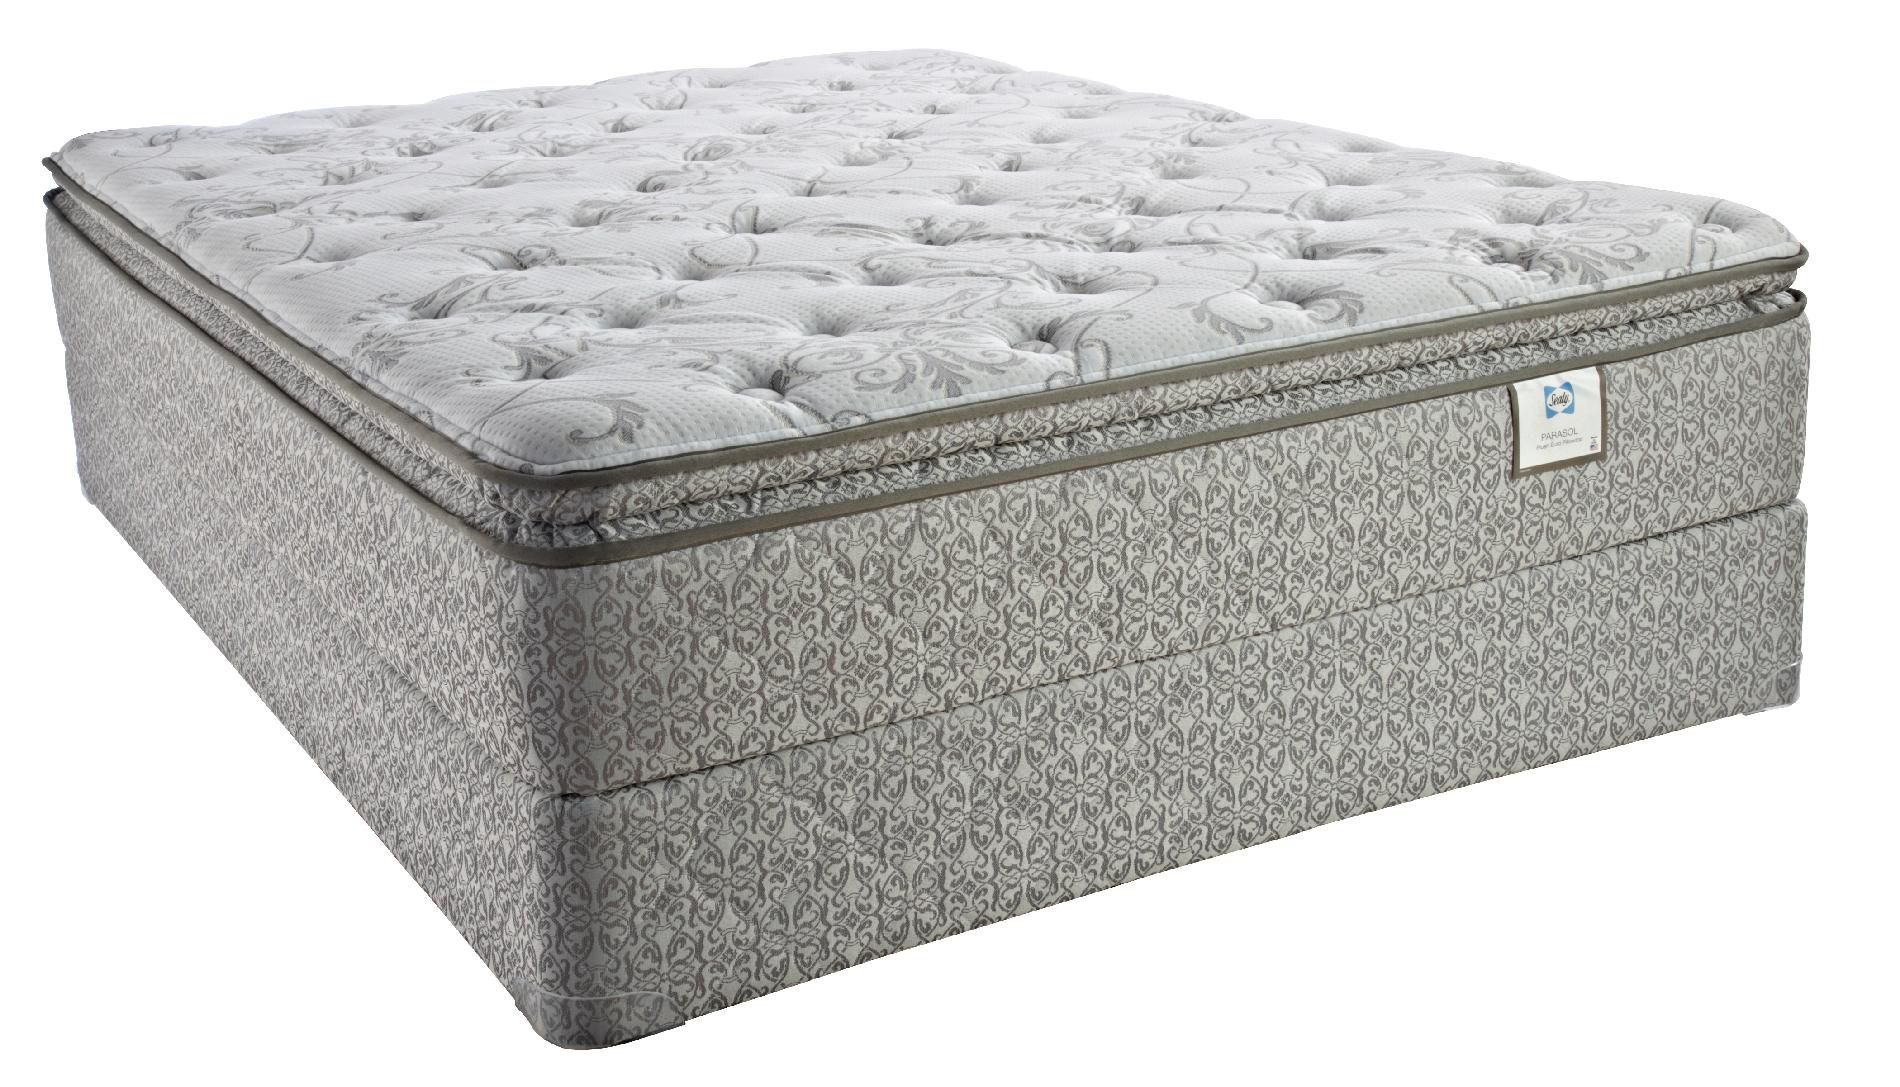 Sealy Patrician Select Plush Euro Pillowtop King Mattress Only